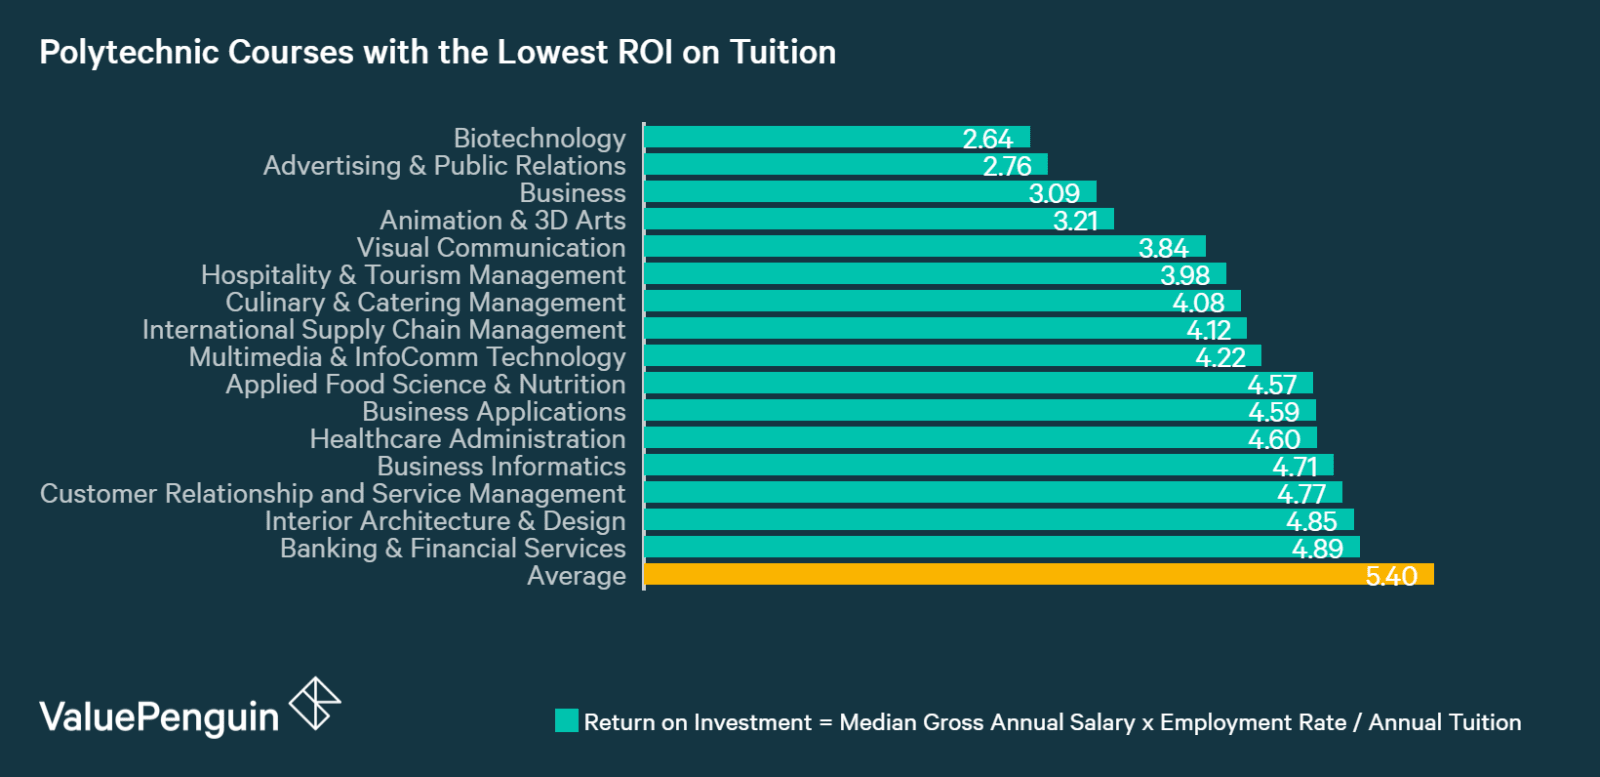 This graph shows which polytech courses have the lowest return on tuition immediately after graduation